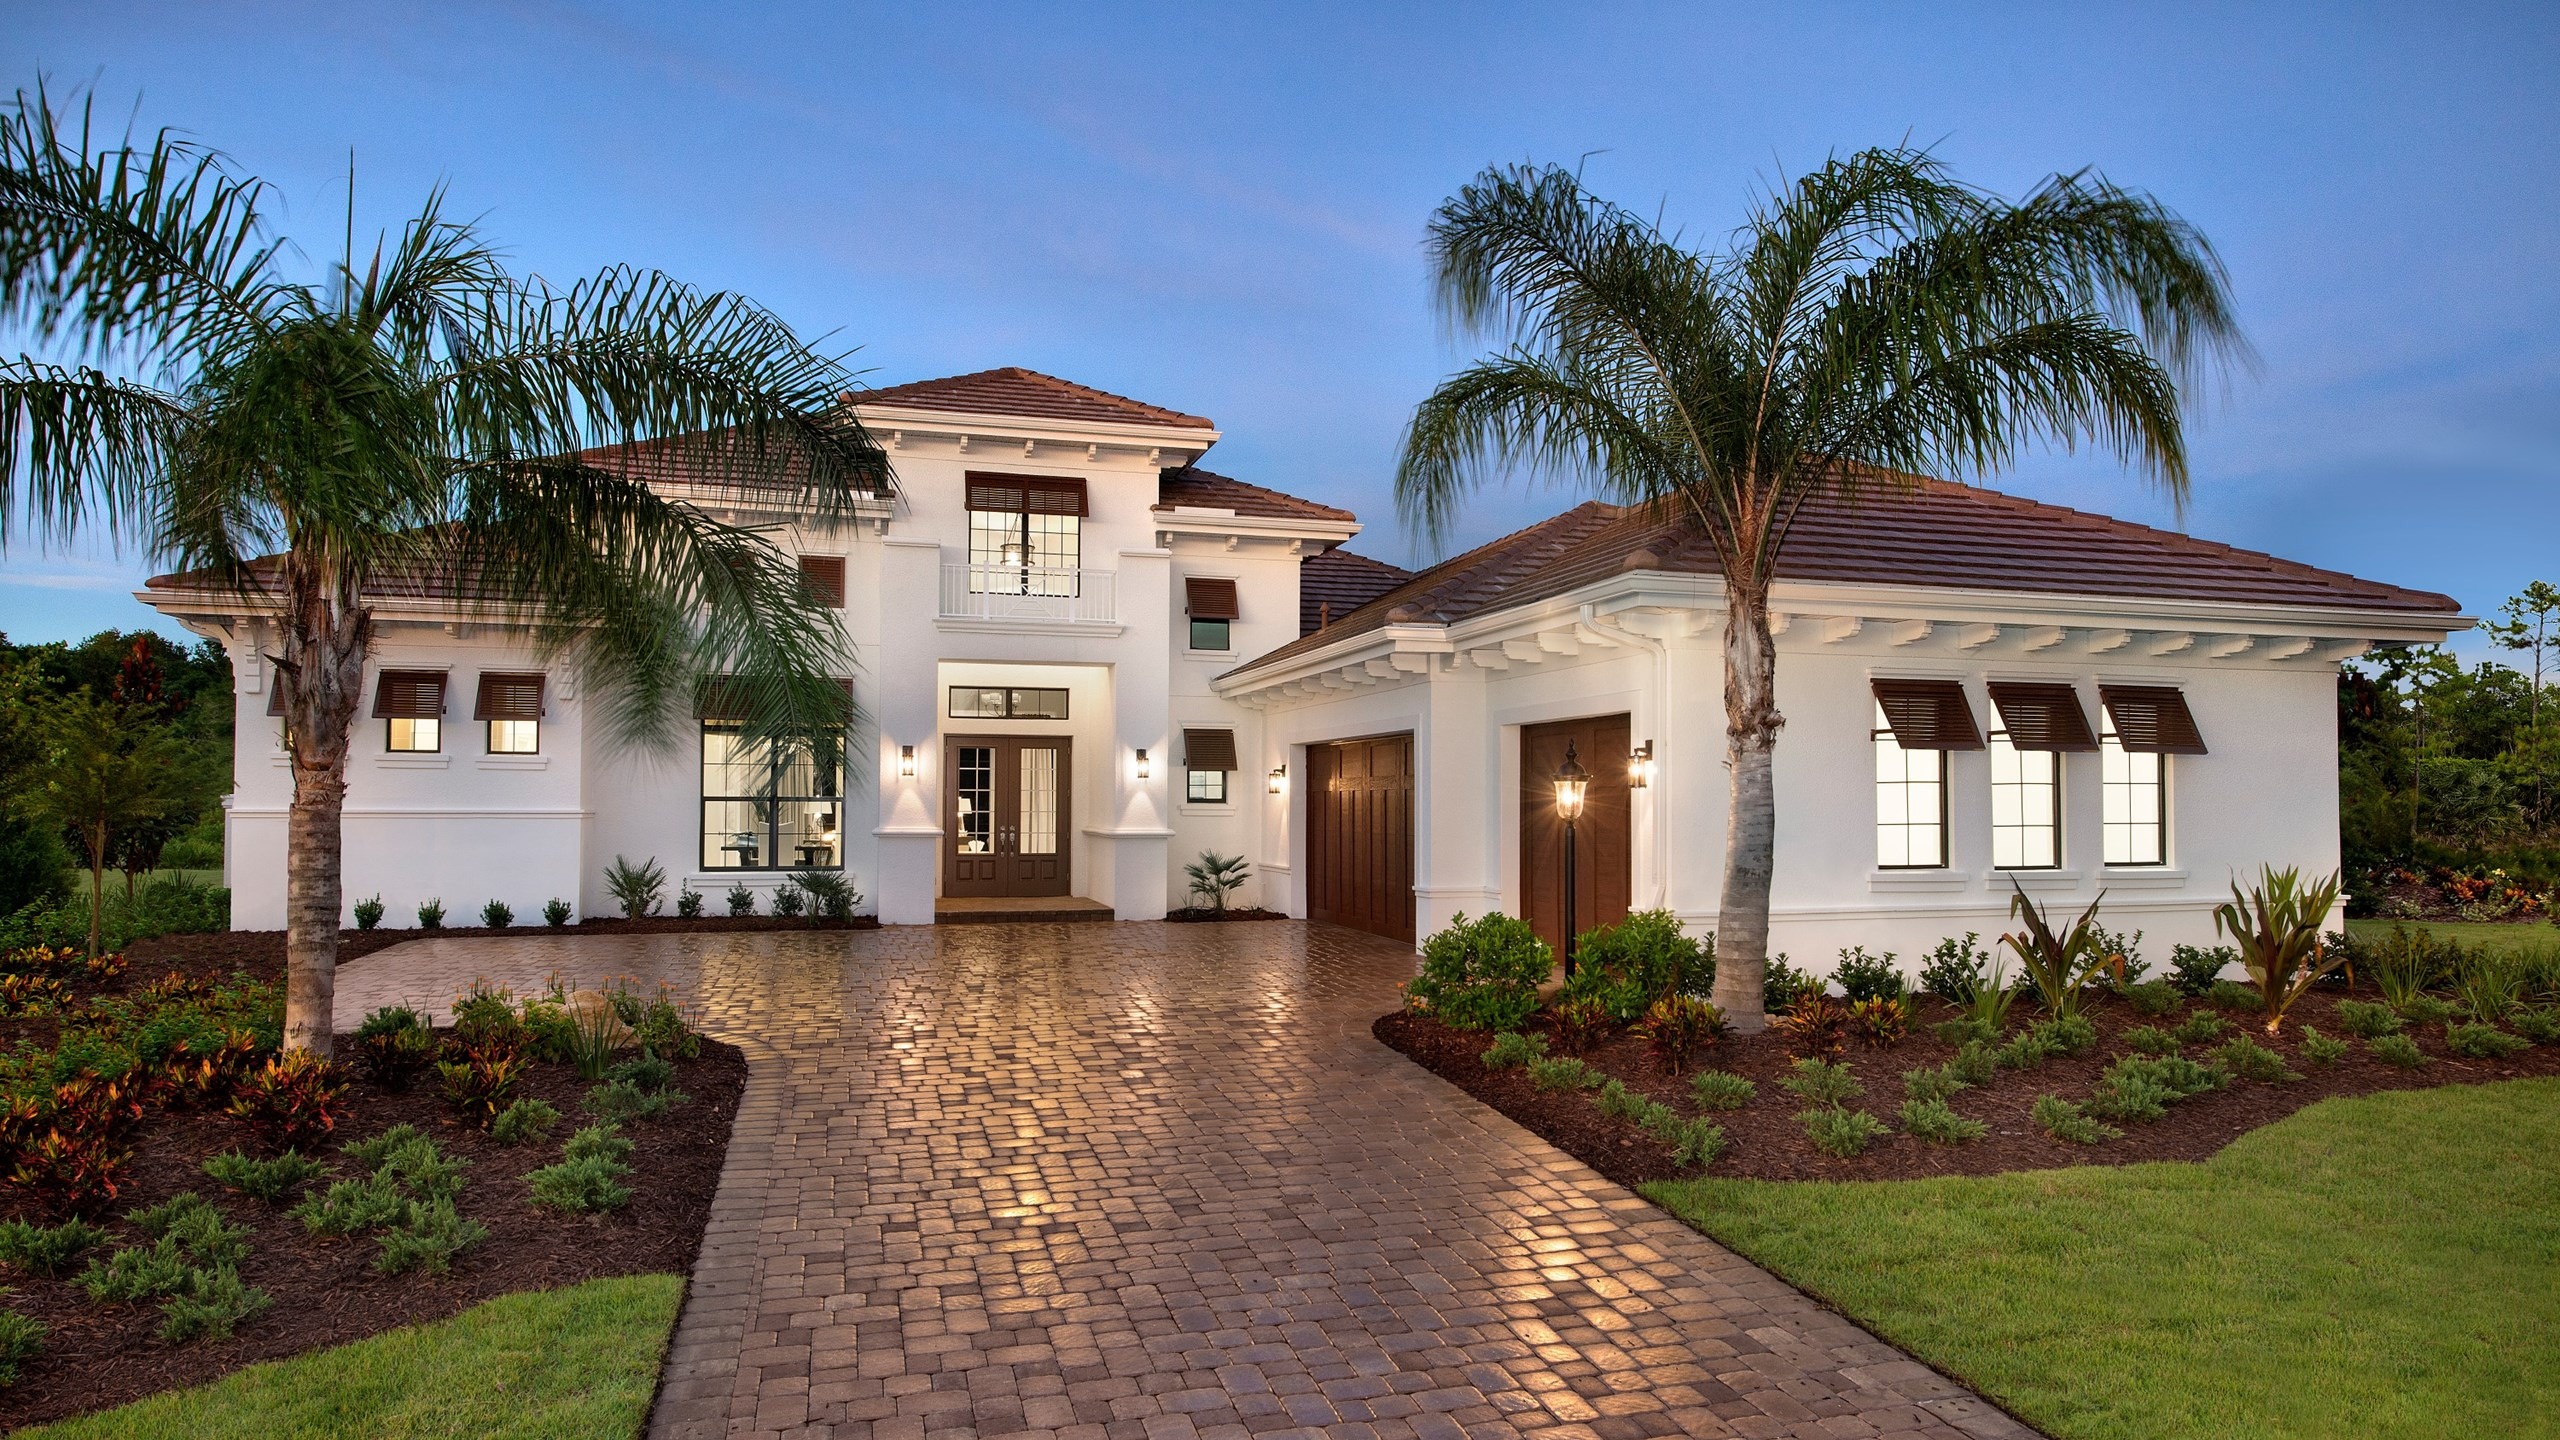 Free Service for Home Buyers   Lakewood Ranch Florida Real Estate   Lakewood Ranch Realtor   New Homes Communities